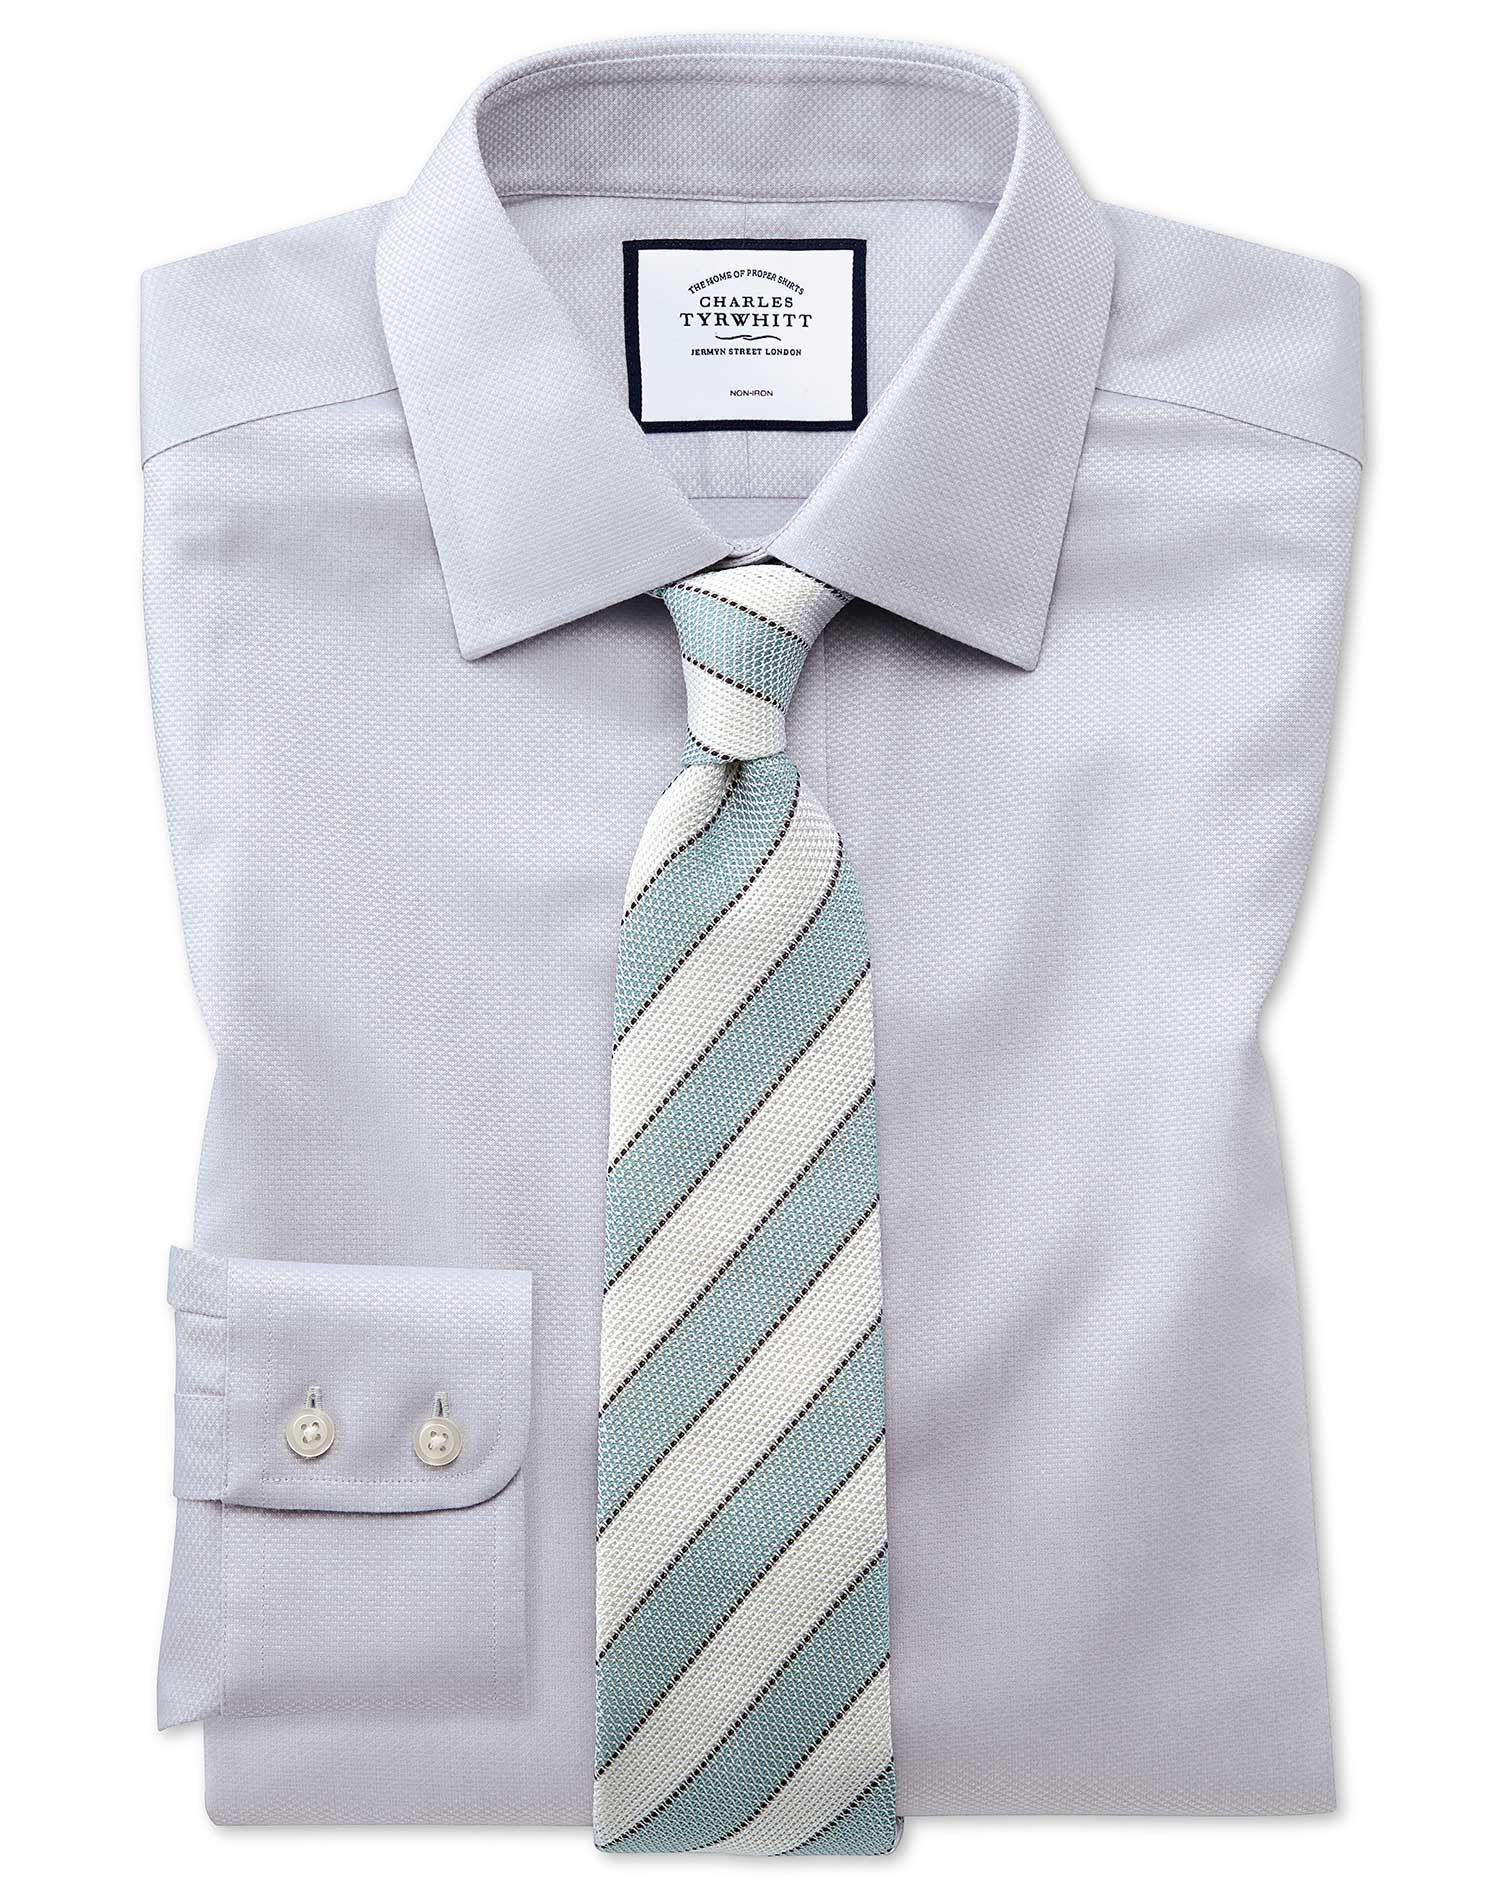 Men's: Formal & Dress Shirts | Charles Tyrwhitt